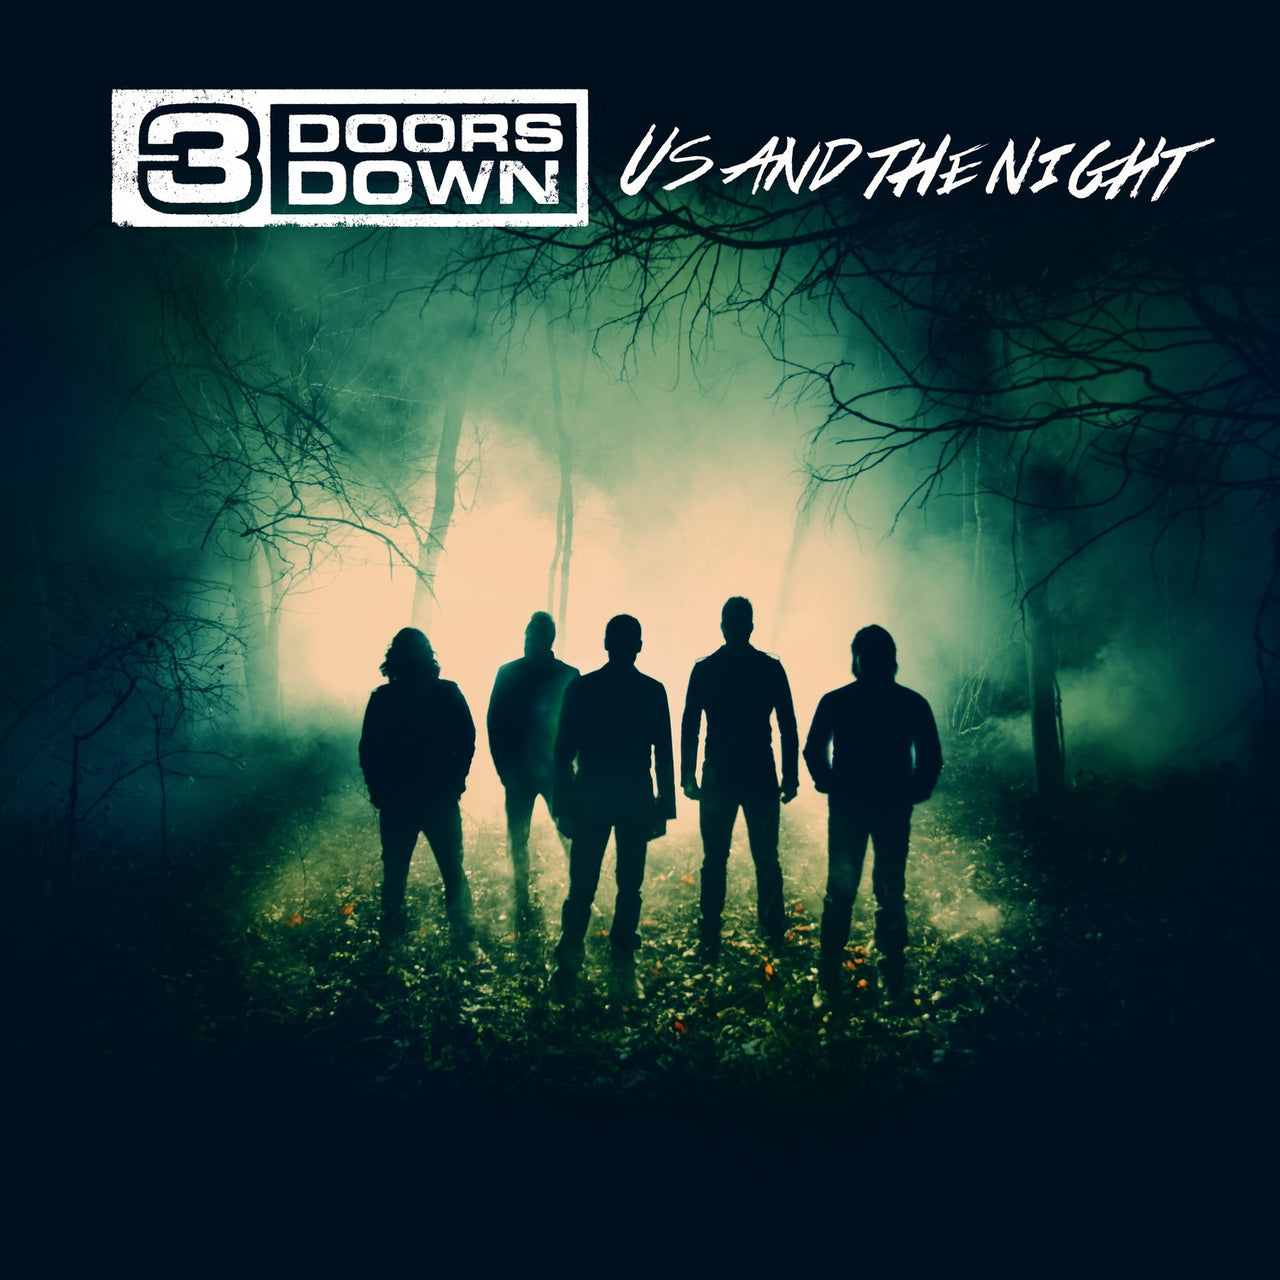 3 Doors Down : Us And The Night  CD